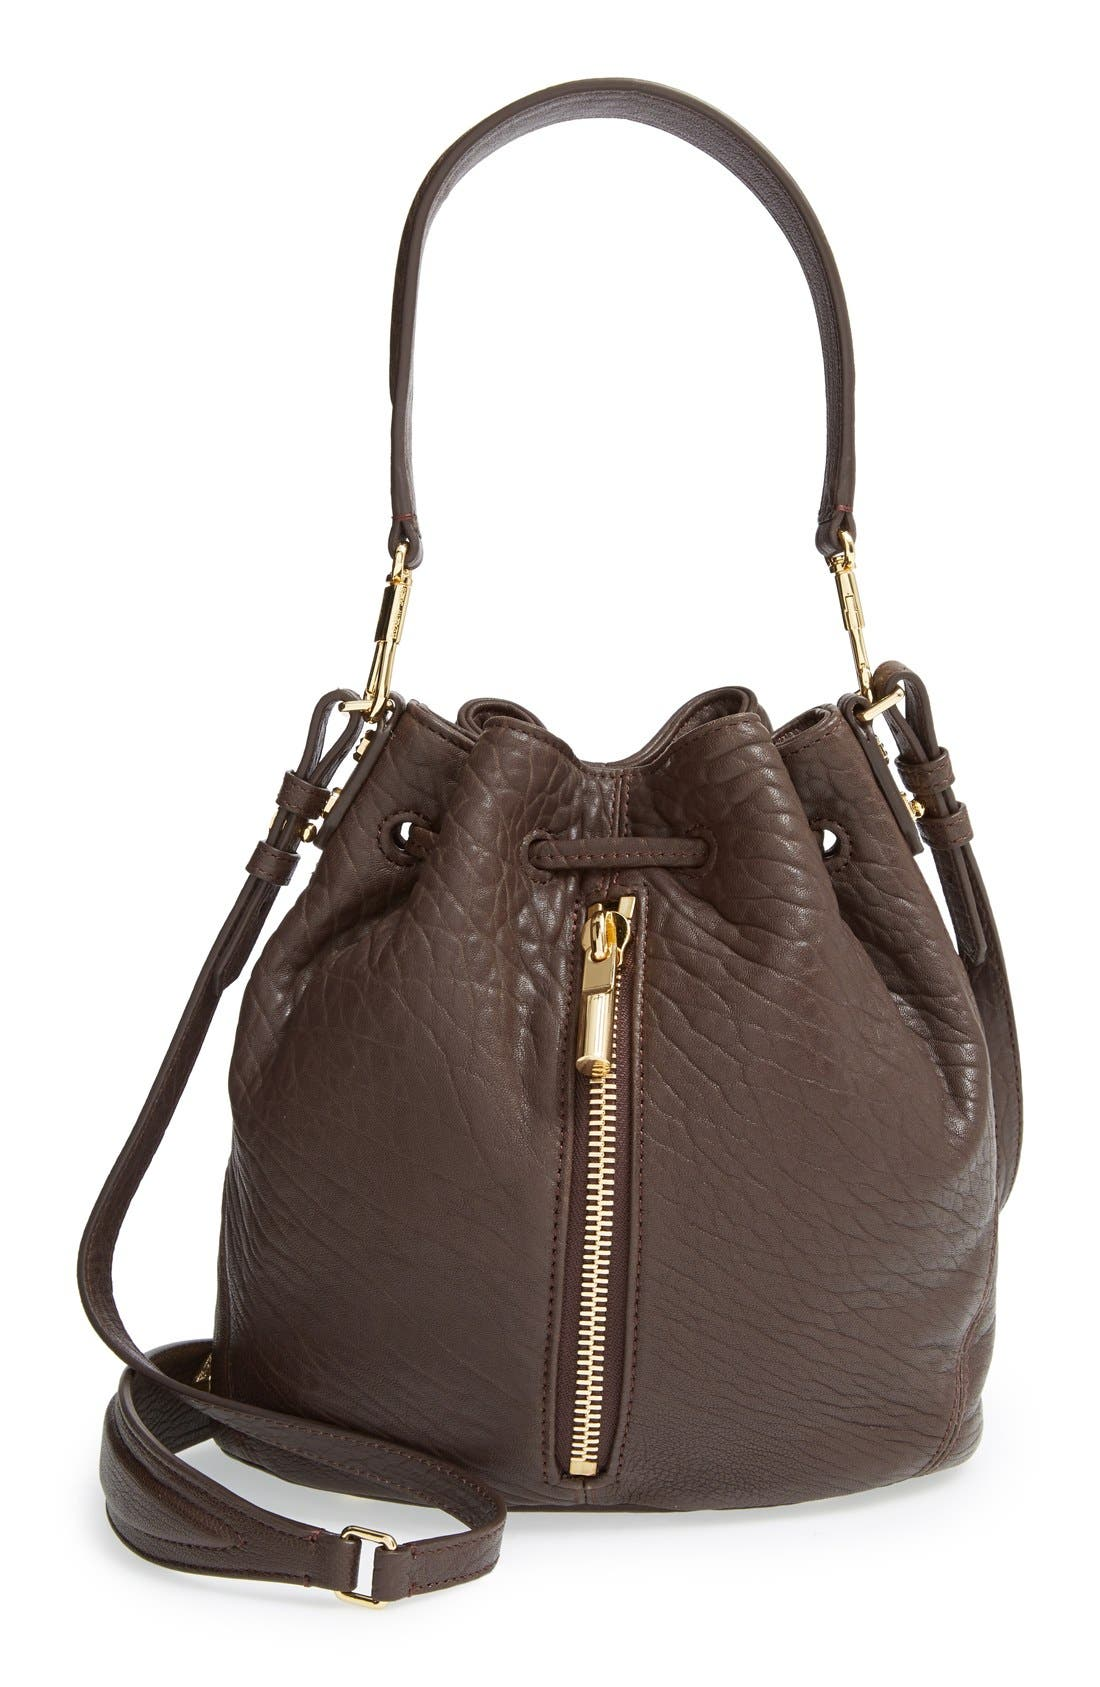 Alternate Image 1 Selected - Elizabeth and James 'Mini Cynnie' Bucket Bag